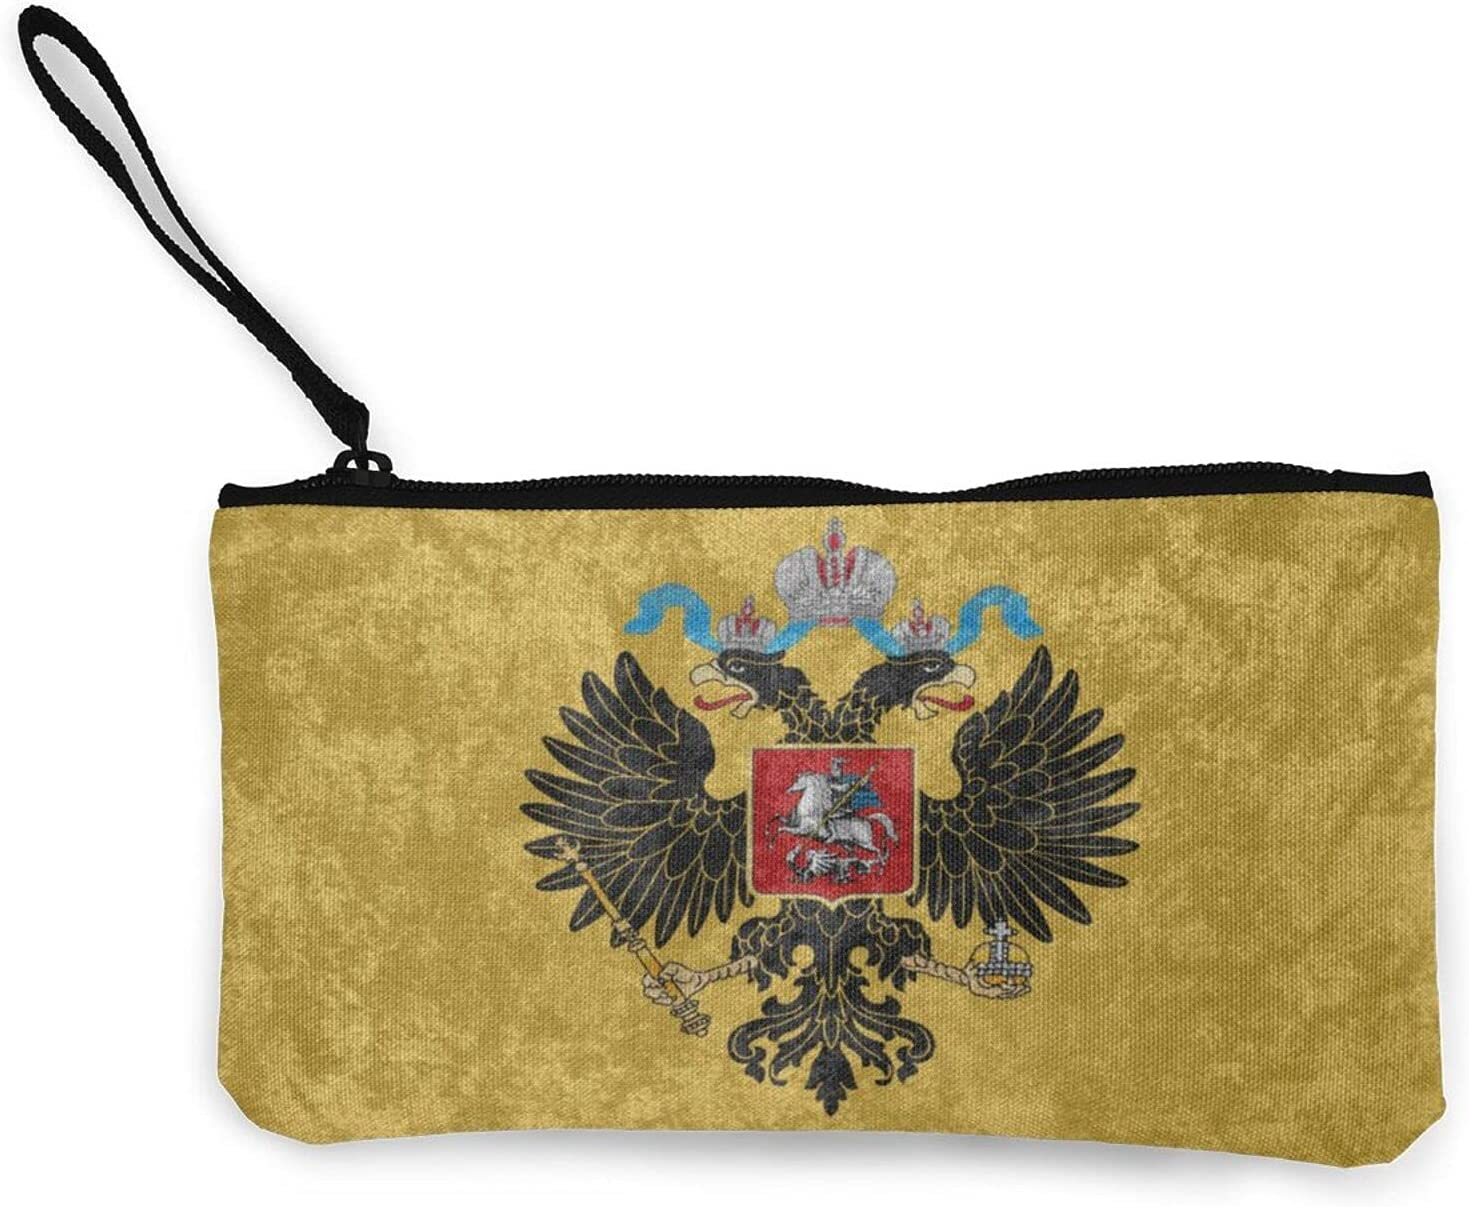 Vintage Russian Empire Flag Multifunction Travel Toiletry Pouch Small Canvas Coin Wallet Bag Zipper